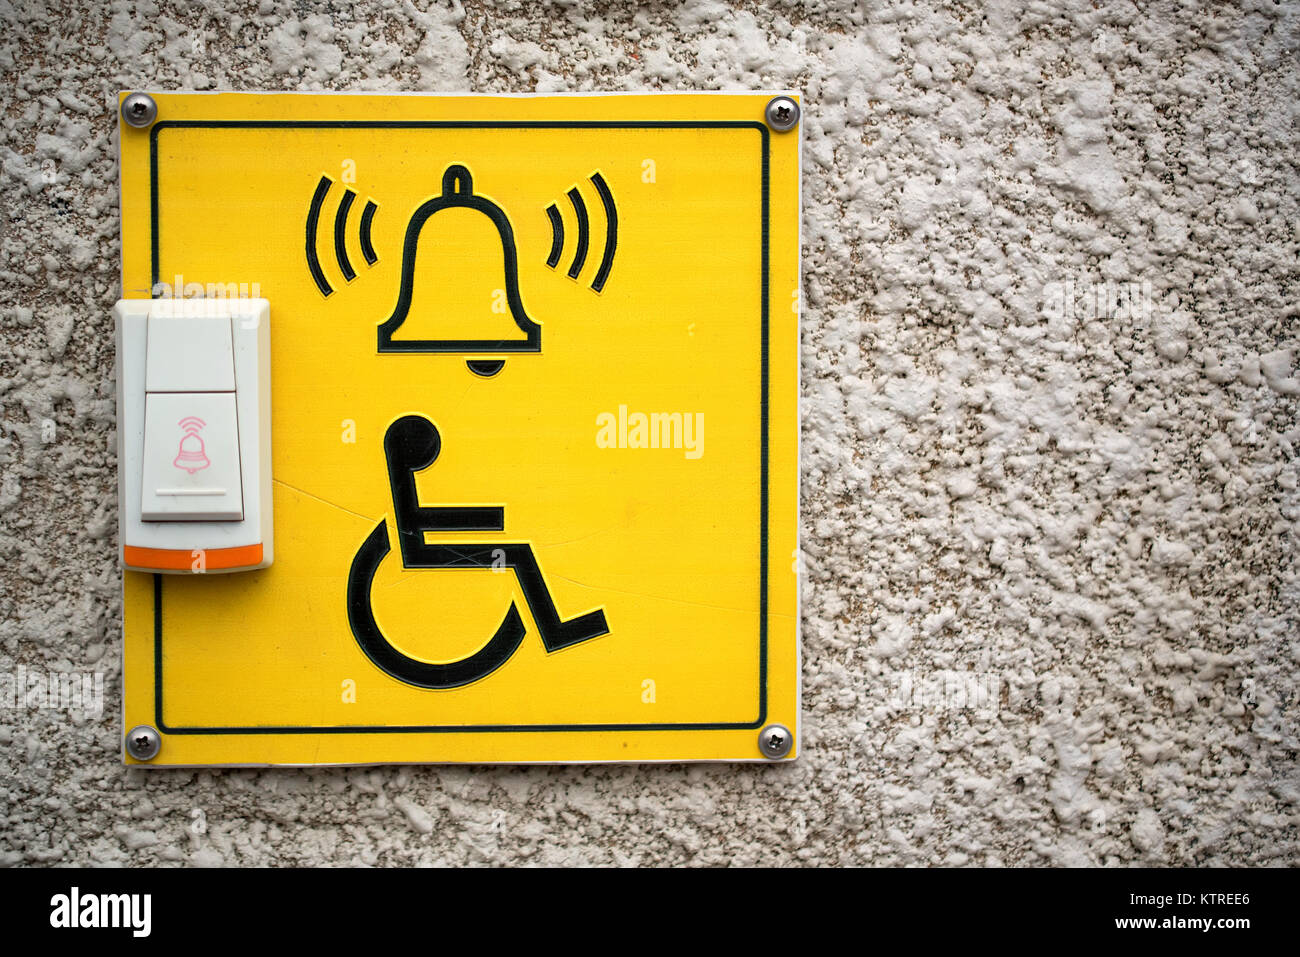 Doorbell for disabled entrance - Stock Image